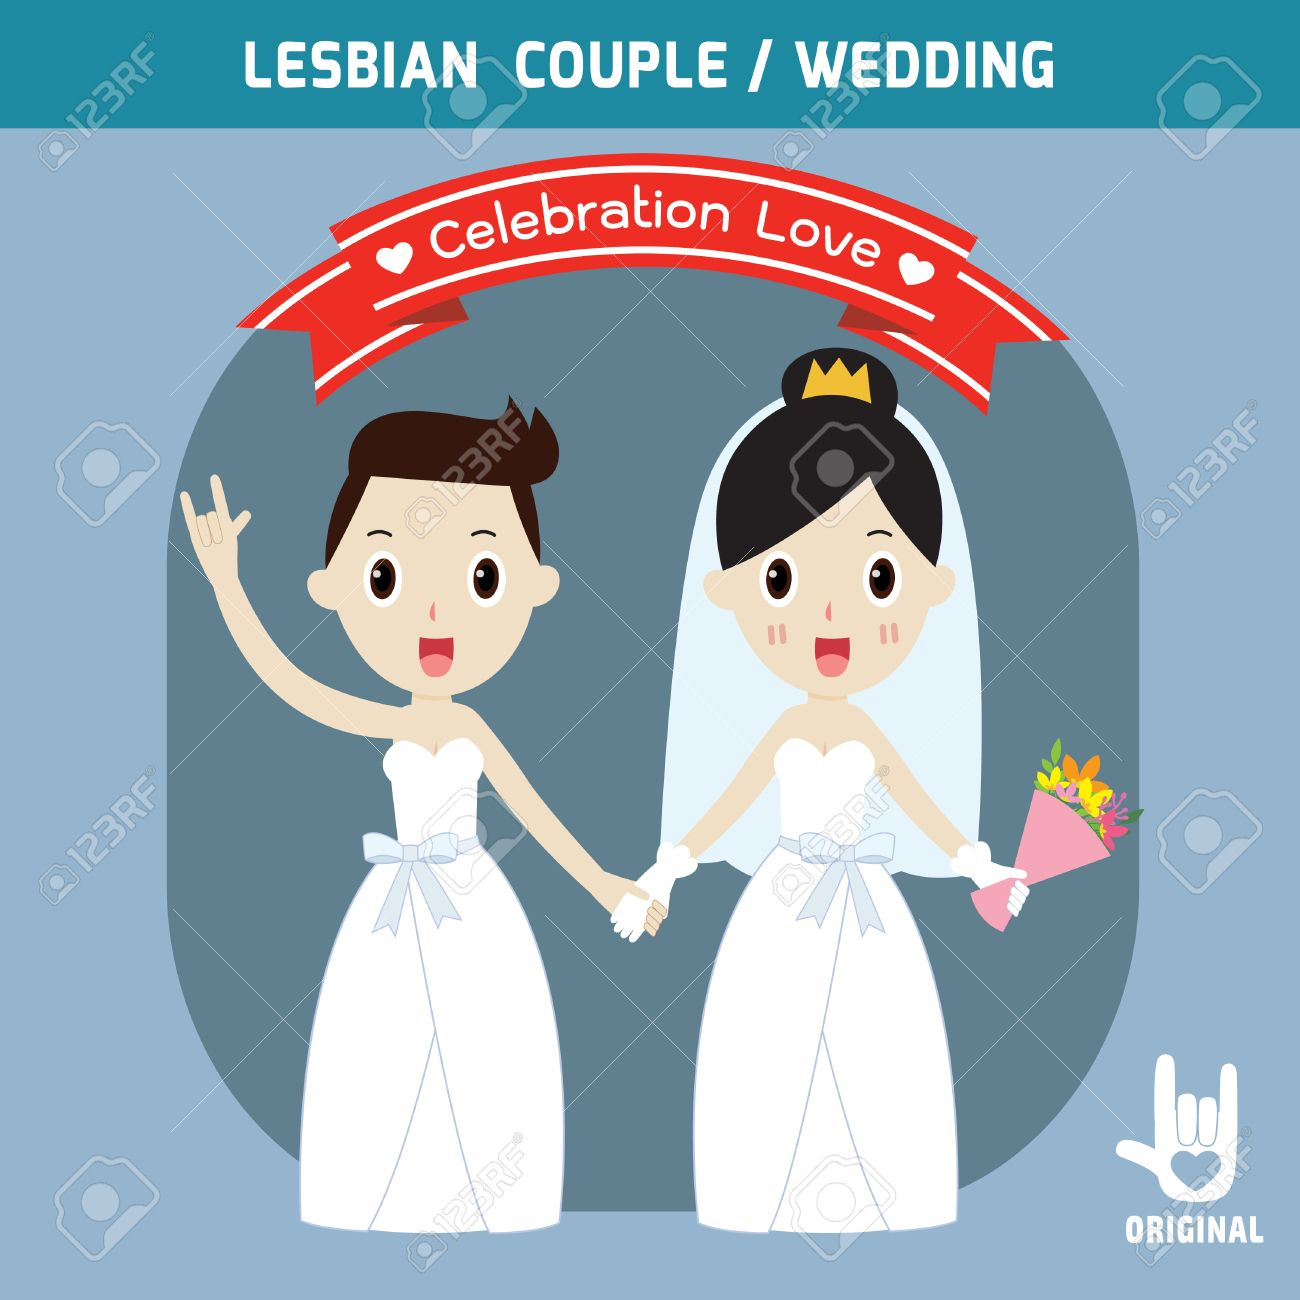 lesbian wedding couples holding hands.spouse,bridal people couple